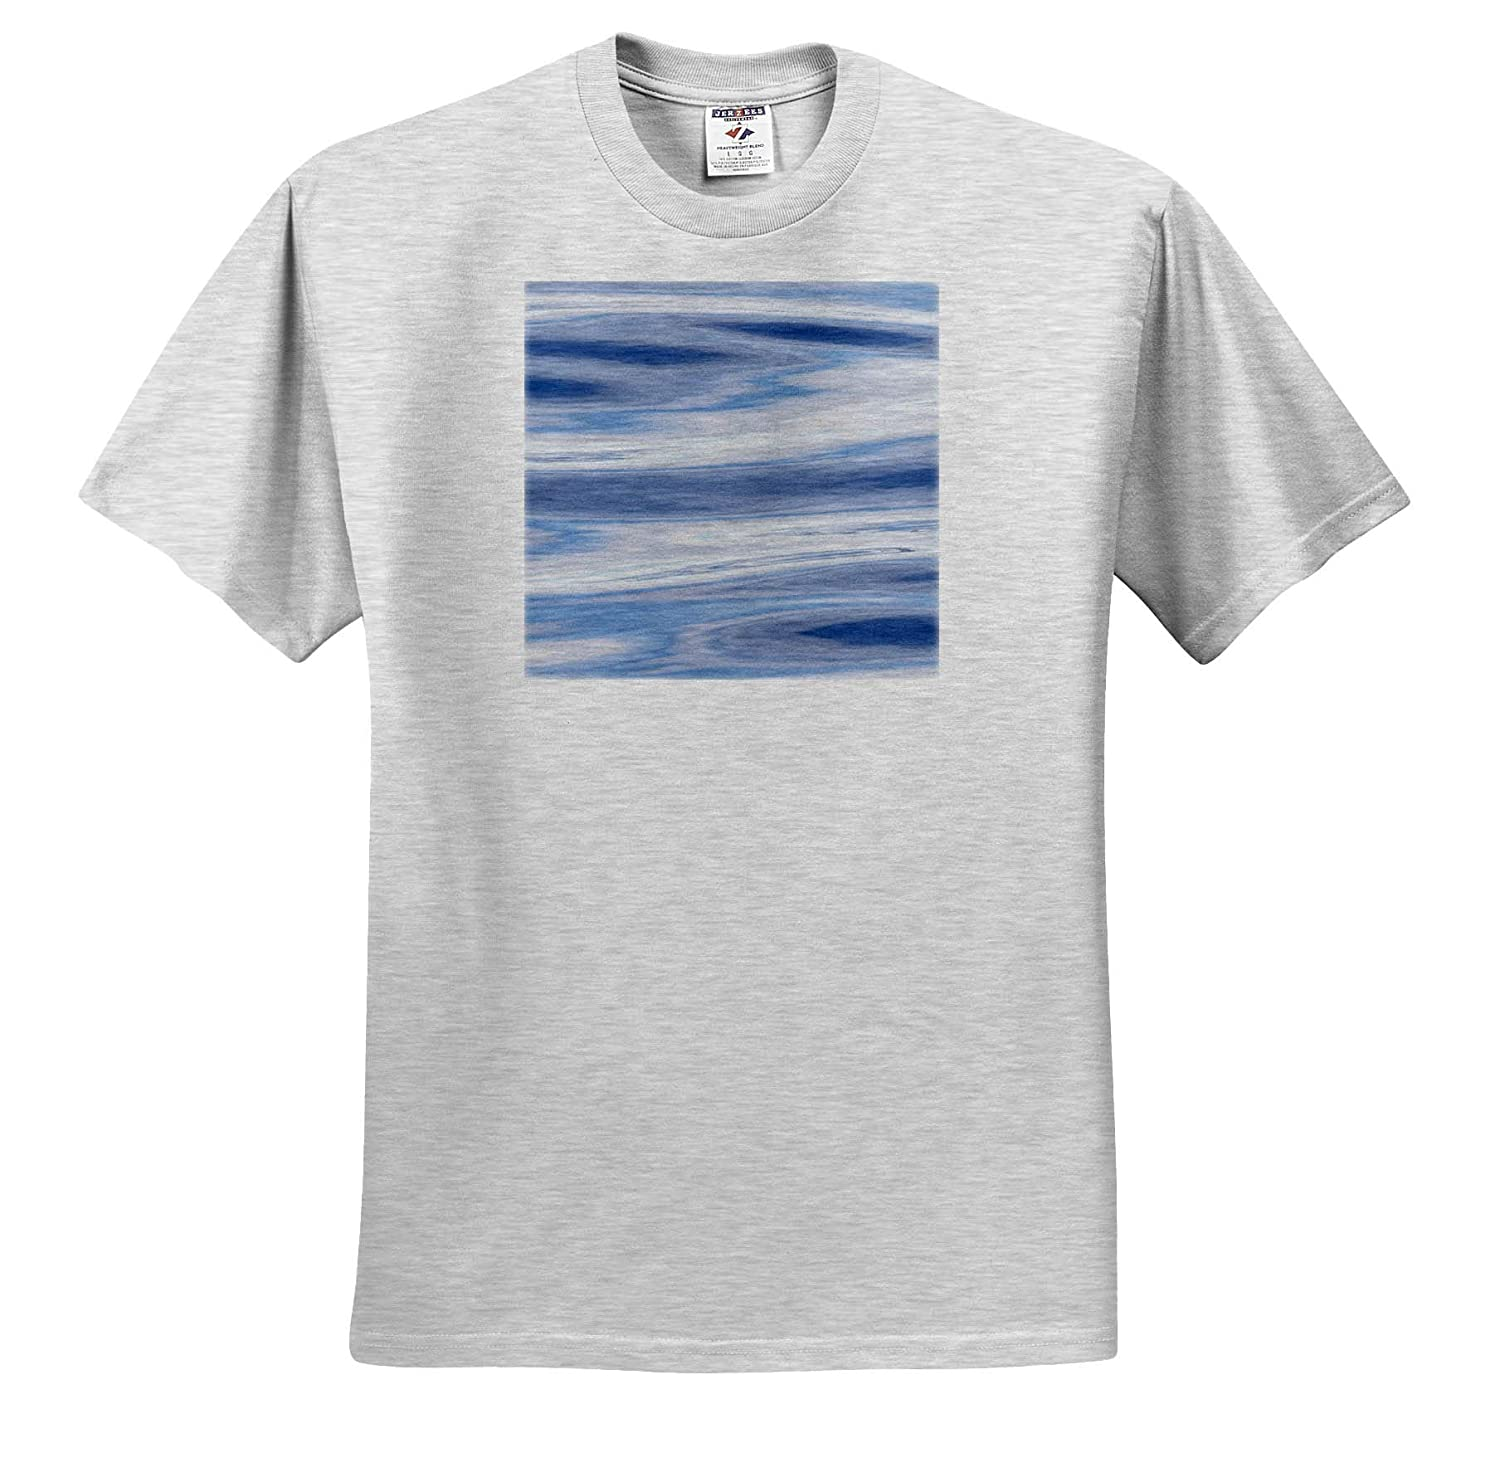 Waves Reflecting Sky in Blue Abstracts Grey and Silver ts/_313896 3dRose Danita Delimont - Adult T-Shirt XL